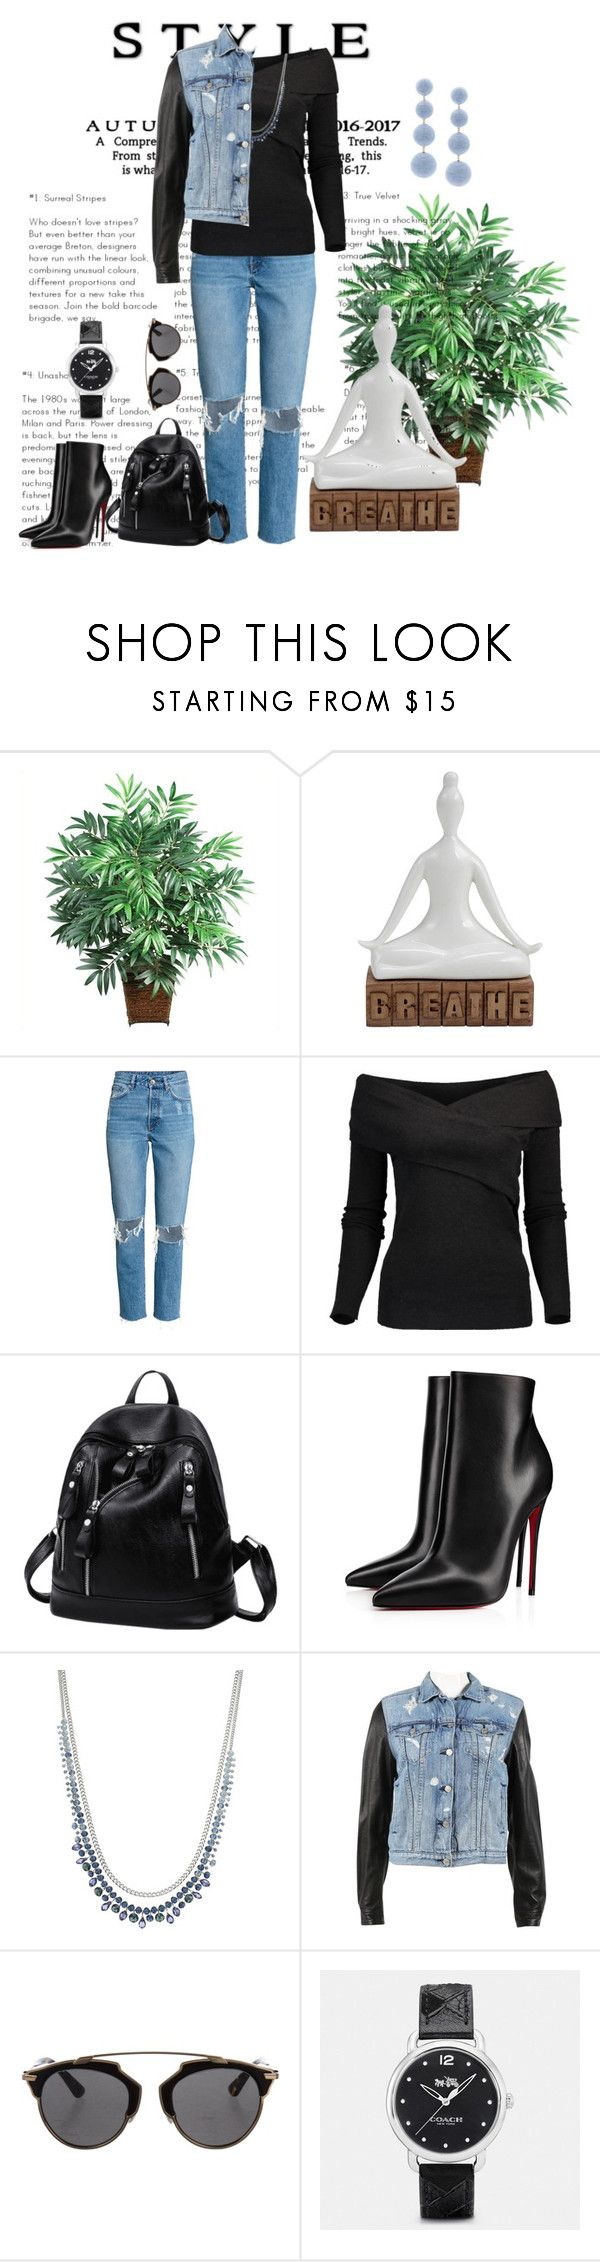 """""""👖"""" by paula-parker ❤ liked on Polyvore featuring Nearly Natural, Brunello Cucinelli, Christian Louboutin, Simply Vera, rag & bone, Christian Dior, Coach and Rebecca de Ravenel"""